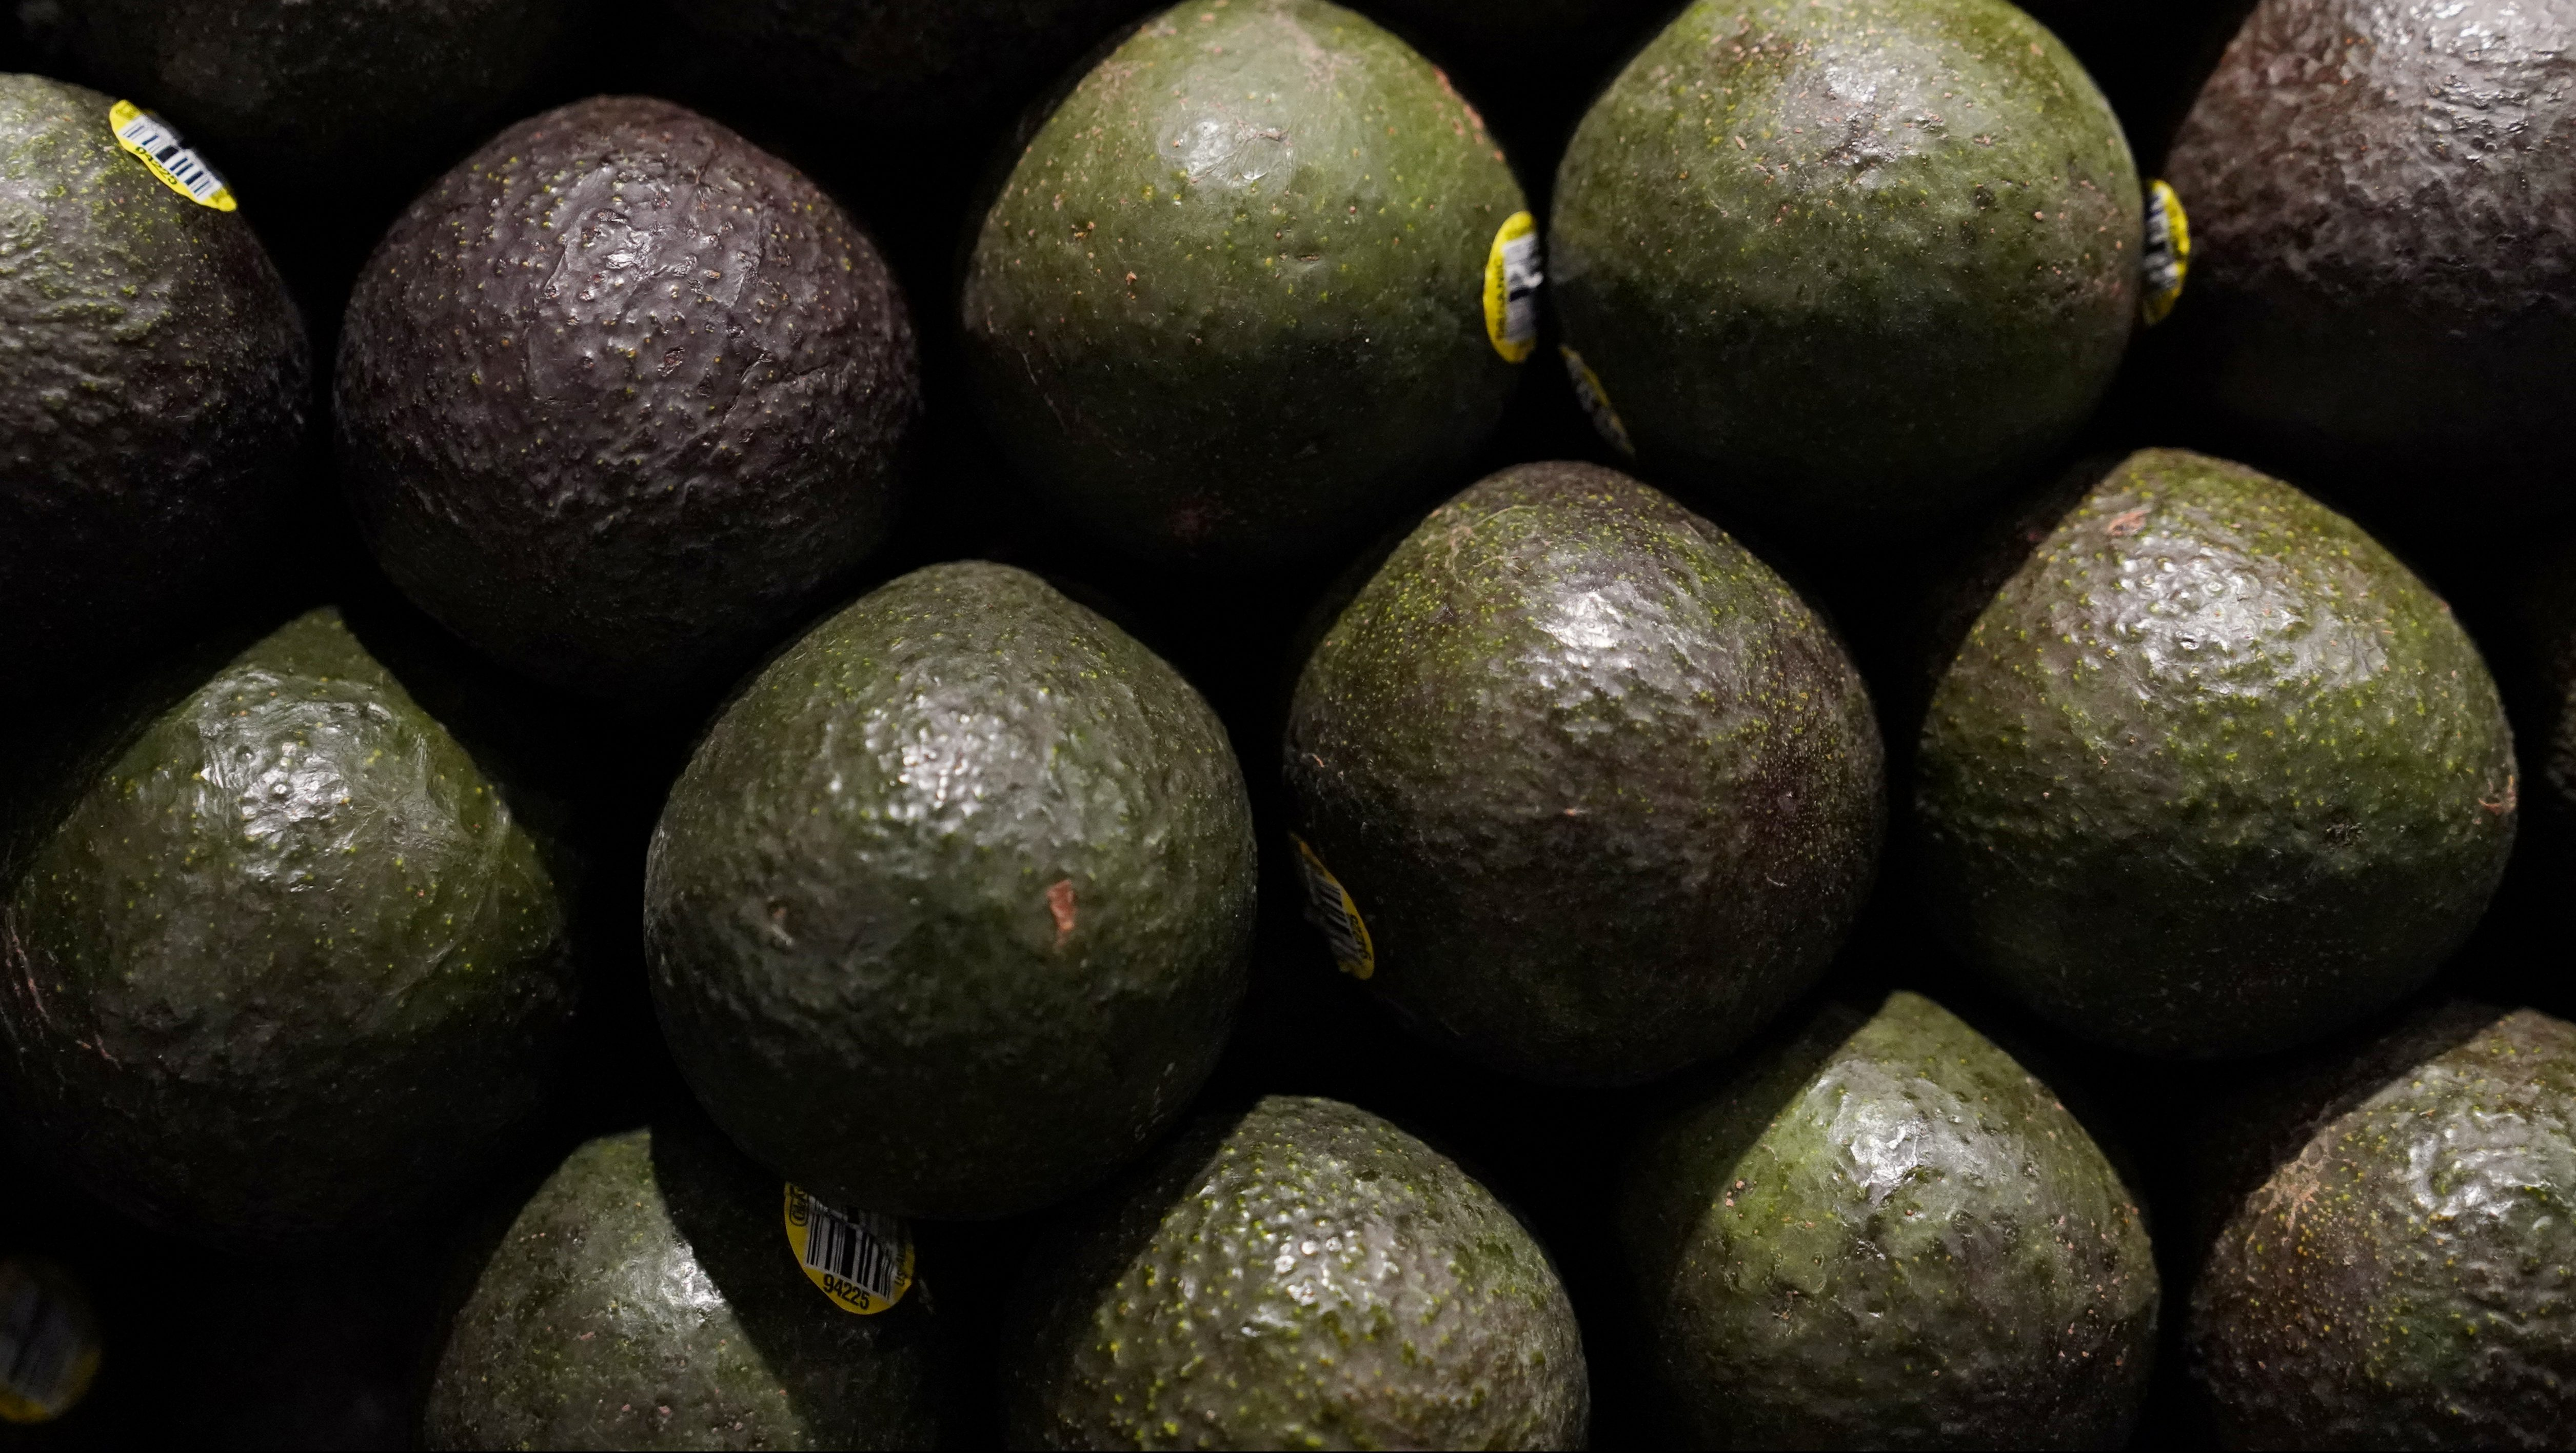 Avocados for sale are pictured inside a Whole Foods Market in the Manhattan borough of New York City, New York, U.S. June 16, 2017.